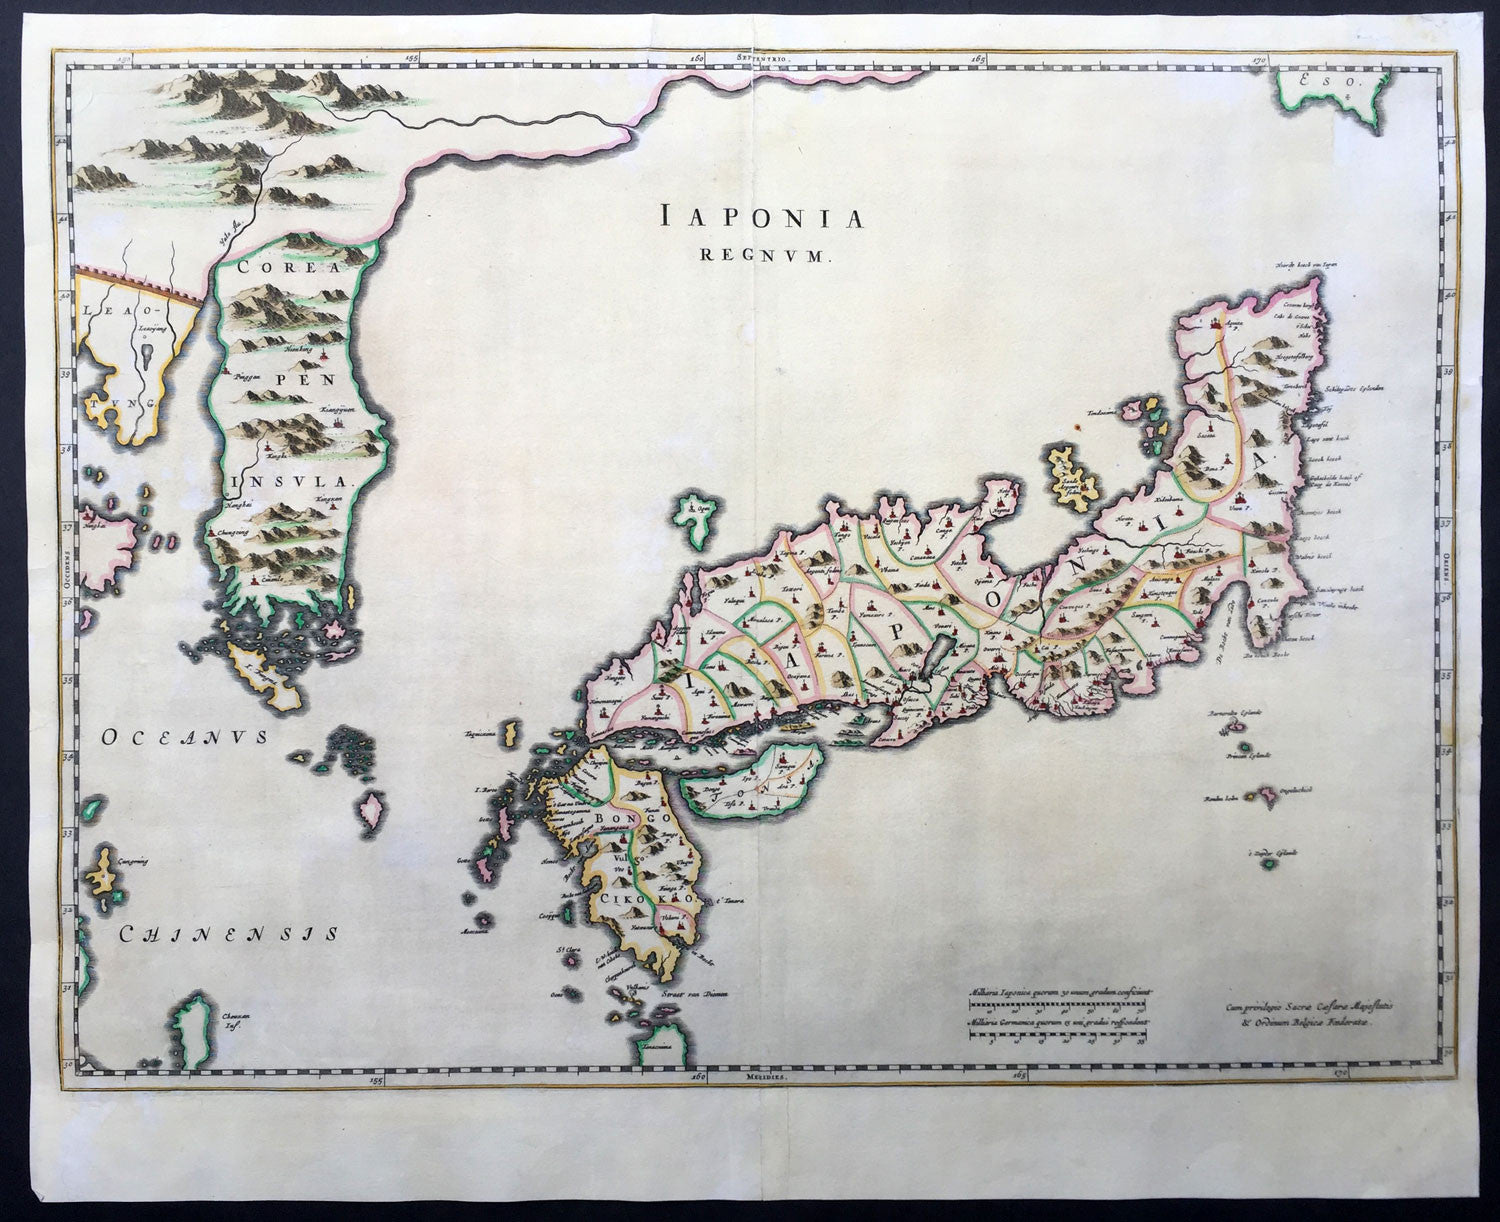 1665 Blaeu Antique Map of The Islands of Japan  Korea  Japonia